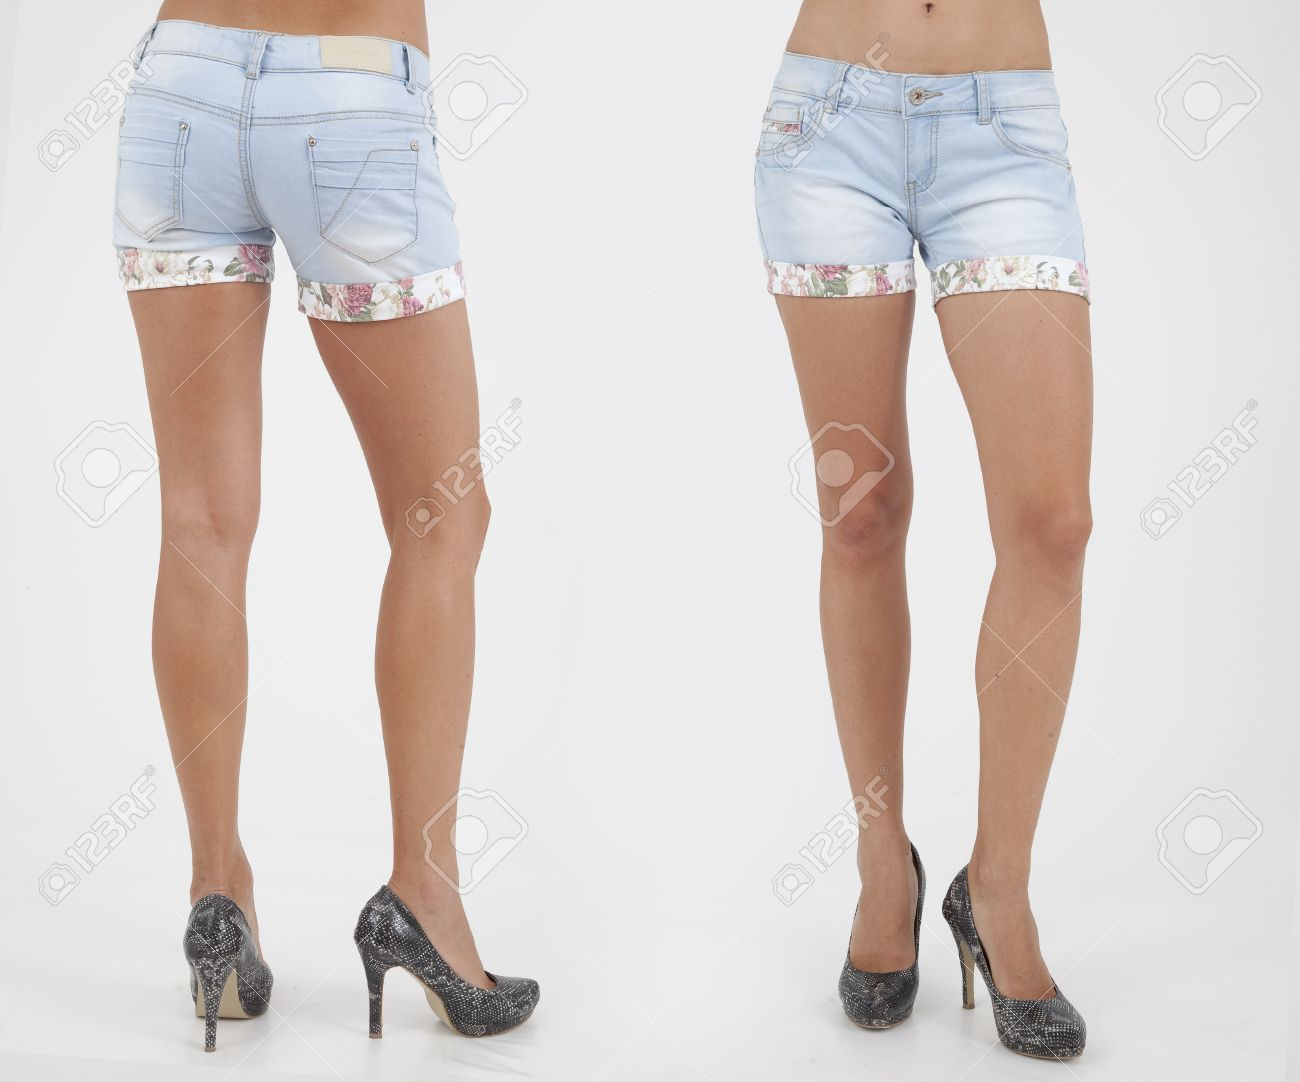 Pretty Women In Shorts On White Background Back And Front Views ...